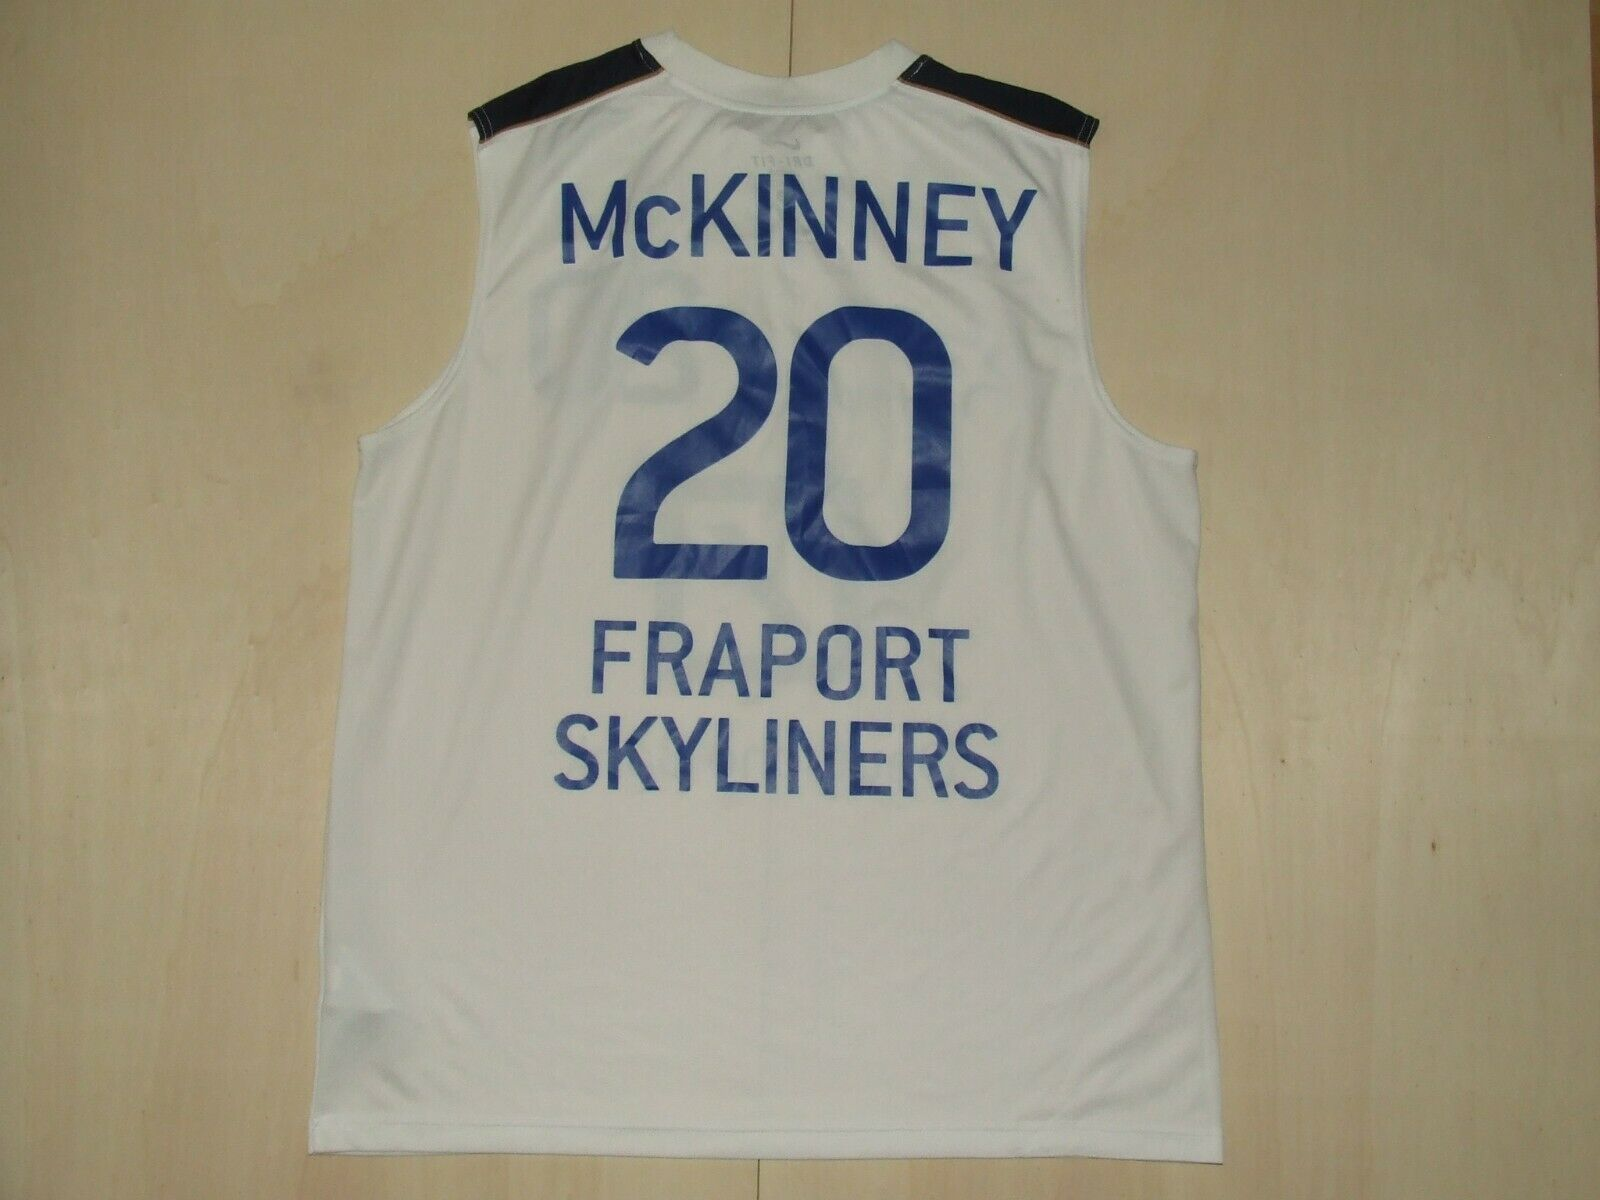 Camiseta Shirt Maillot Baloncesto Match Worn Fraport Skyliners Mckinney 20